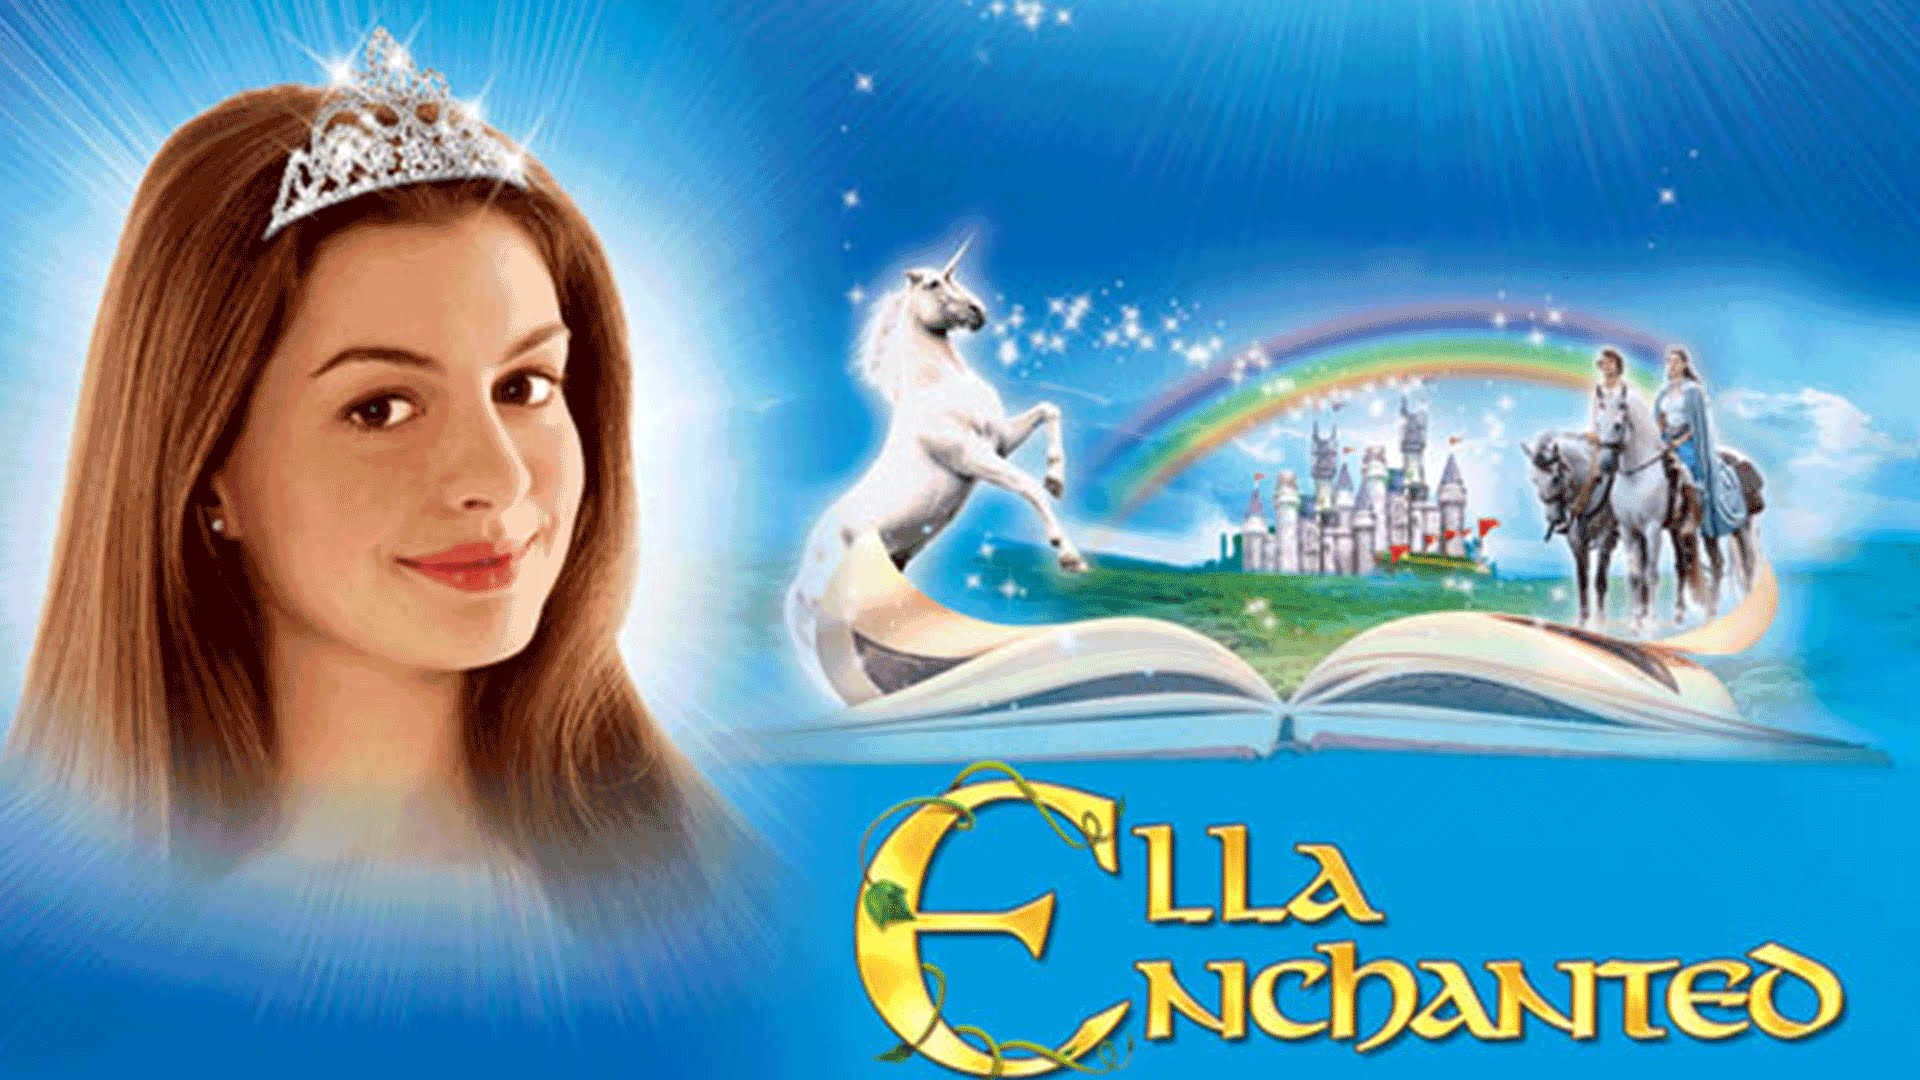 Watch Ella Enchanted (2004) Full HD English Subtitle Watch ...